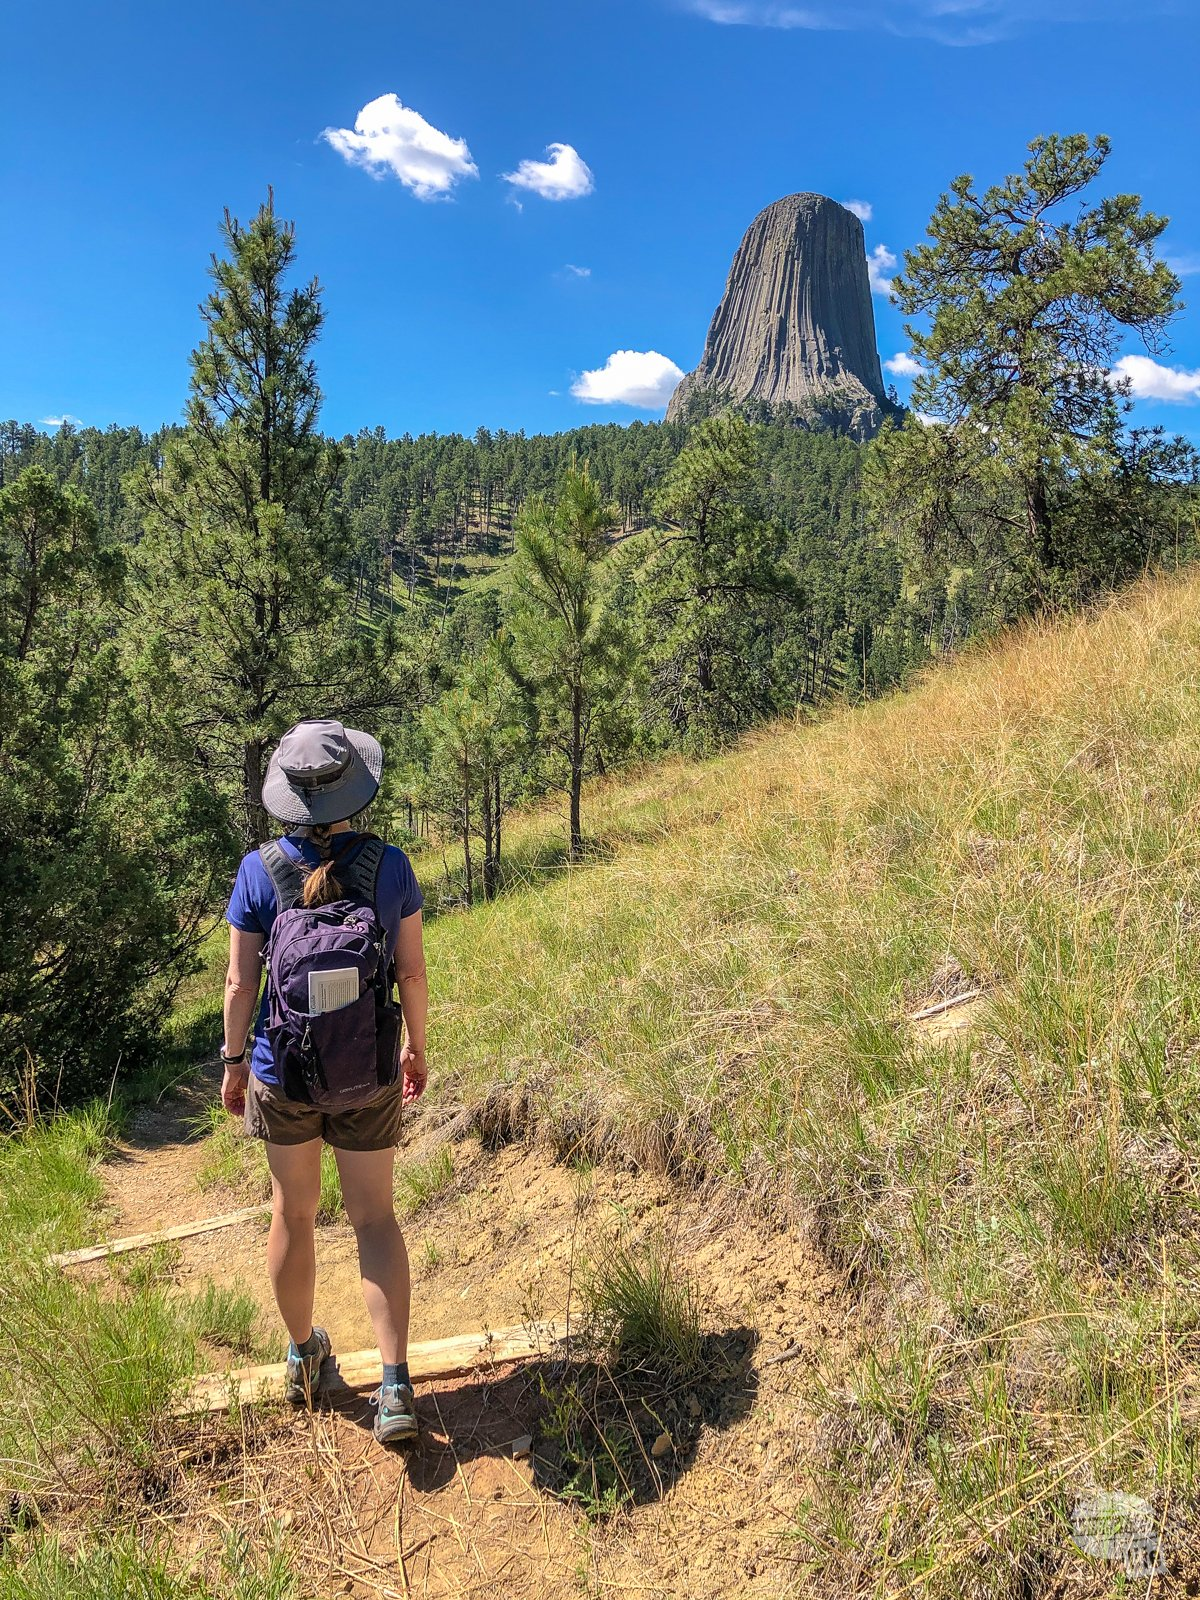 Bonnie stopping to look at Devils Tower on the Joyner Ridge Trail.